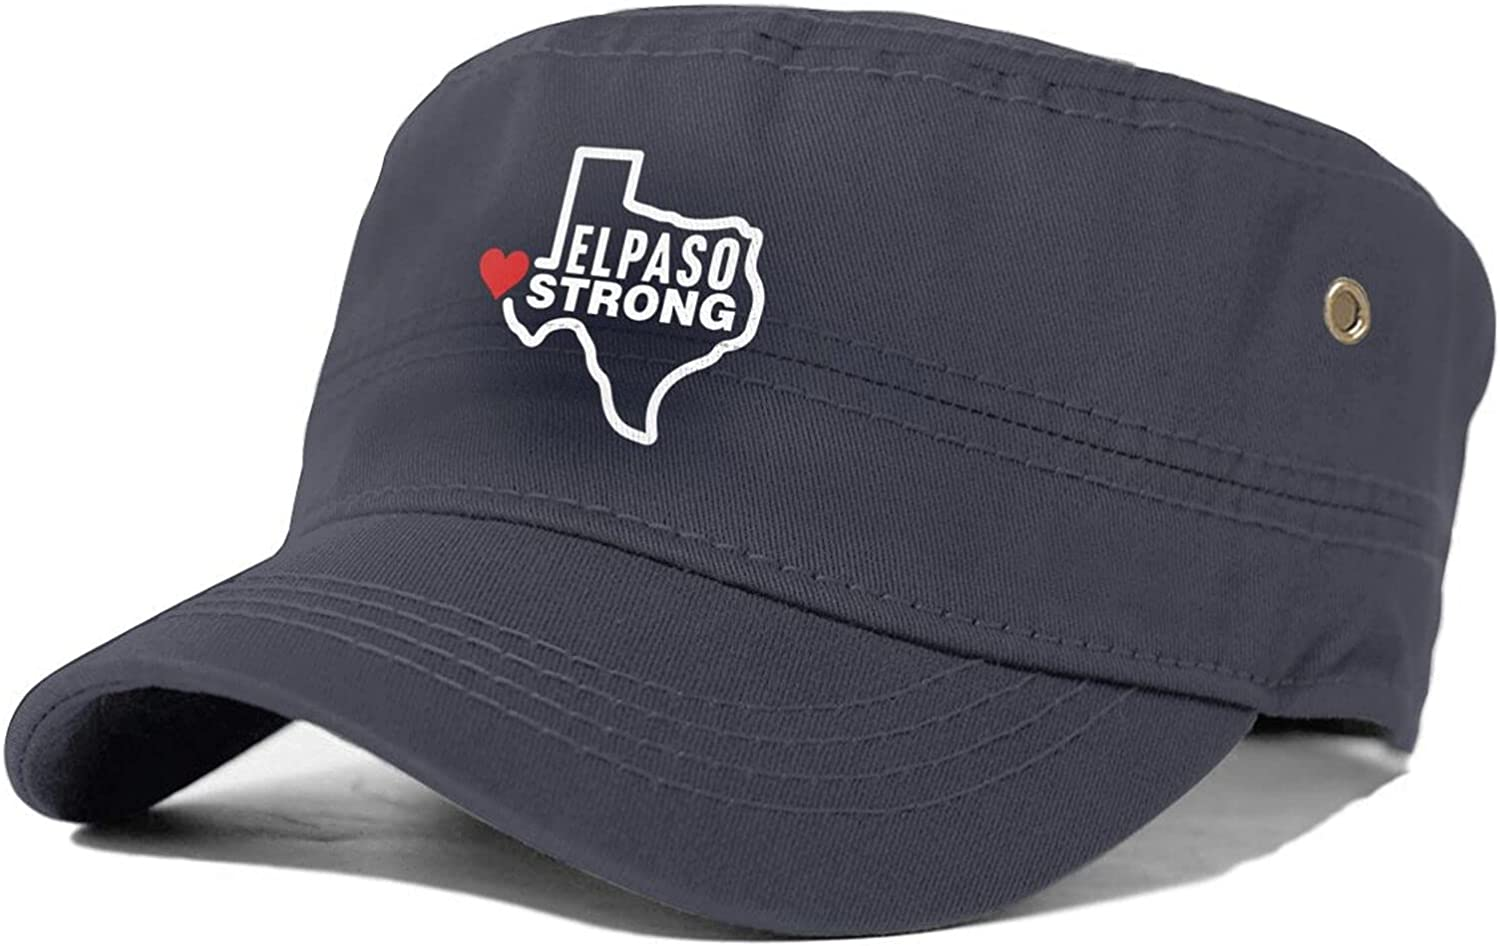 El List price Paso-Strong Unisex Raleigh Mall Adult Flat S Top Military Sun Cap